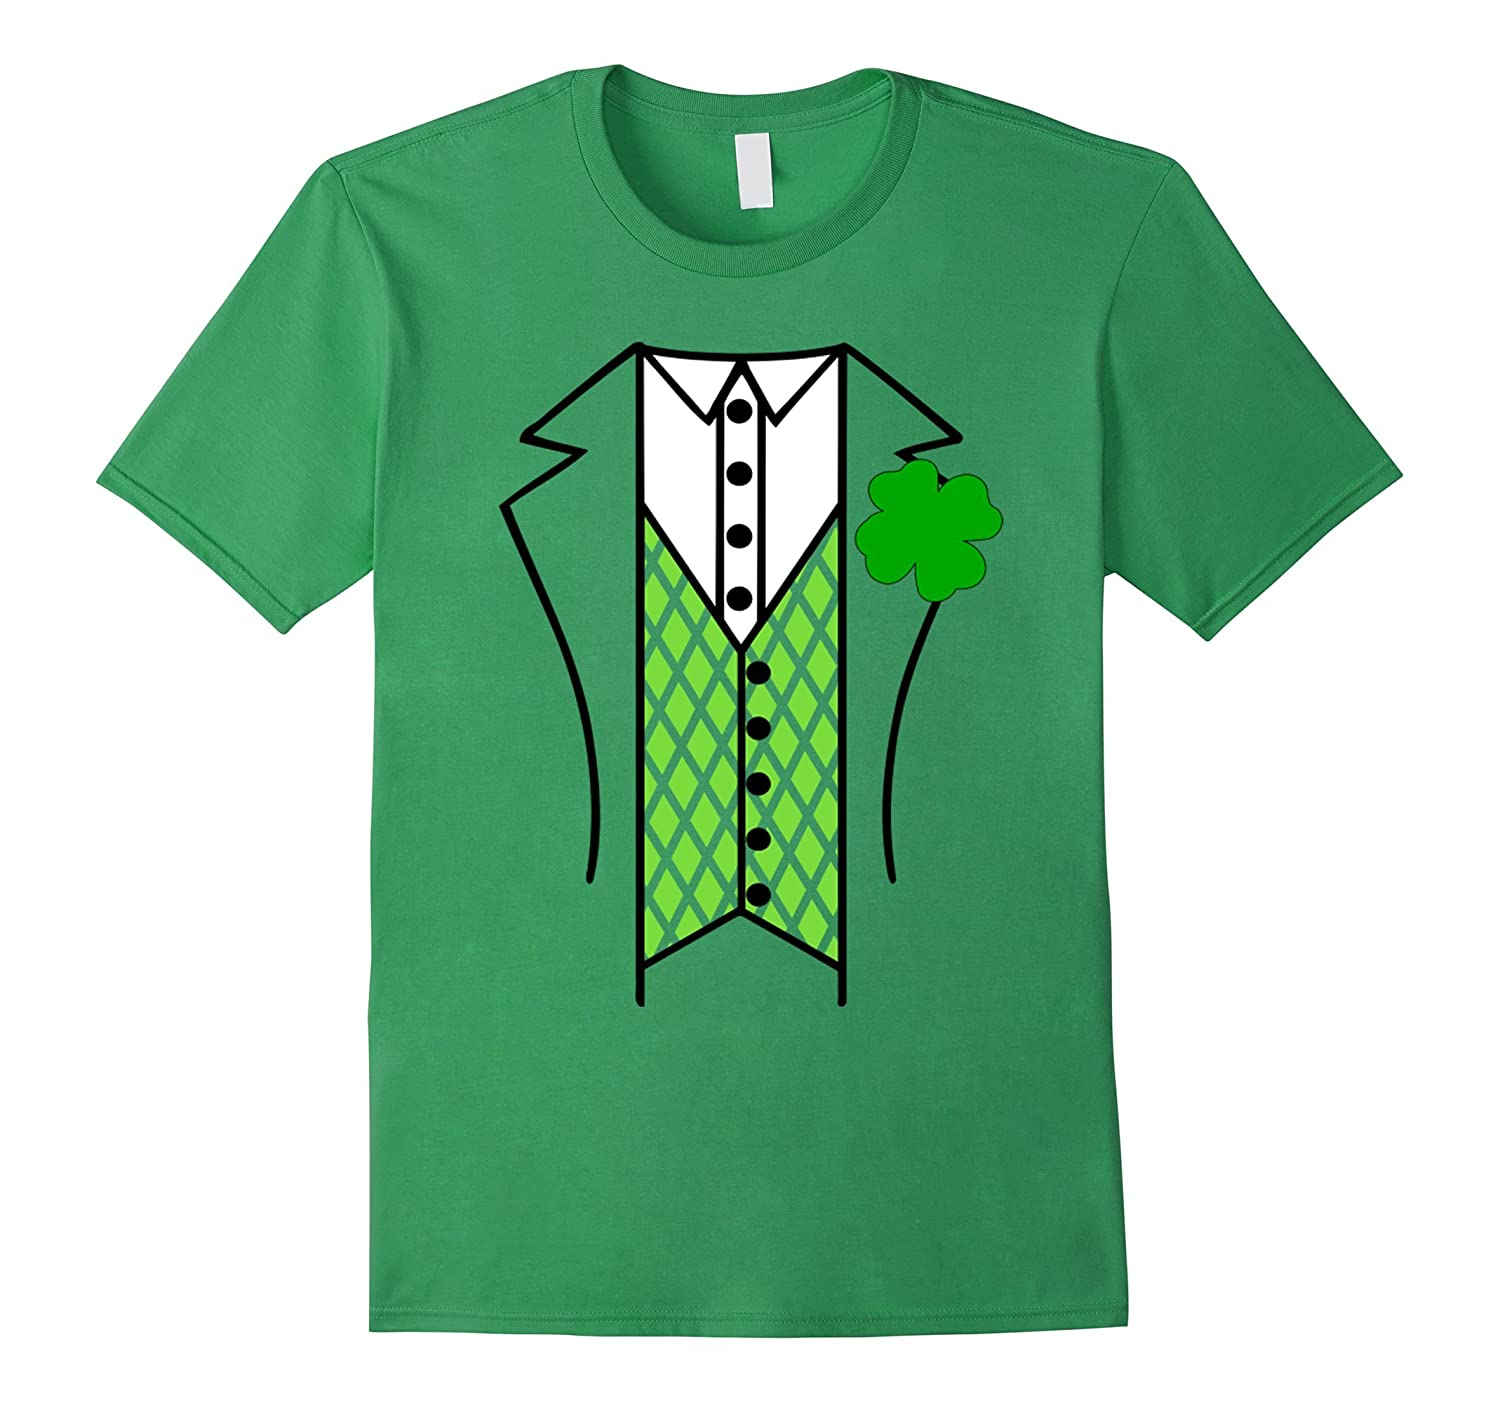 da0d11a9 Irish Tuxedo Shirt Funny St Patricks Day Ireland Leprechaun-TD – Teedep